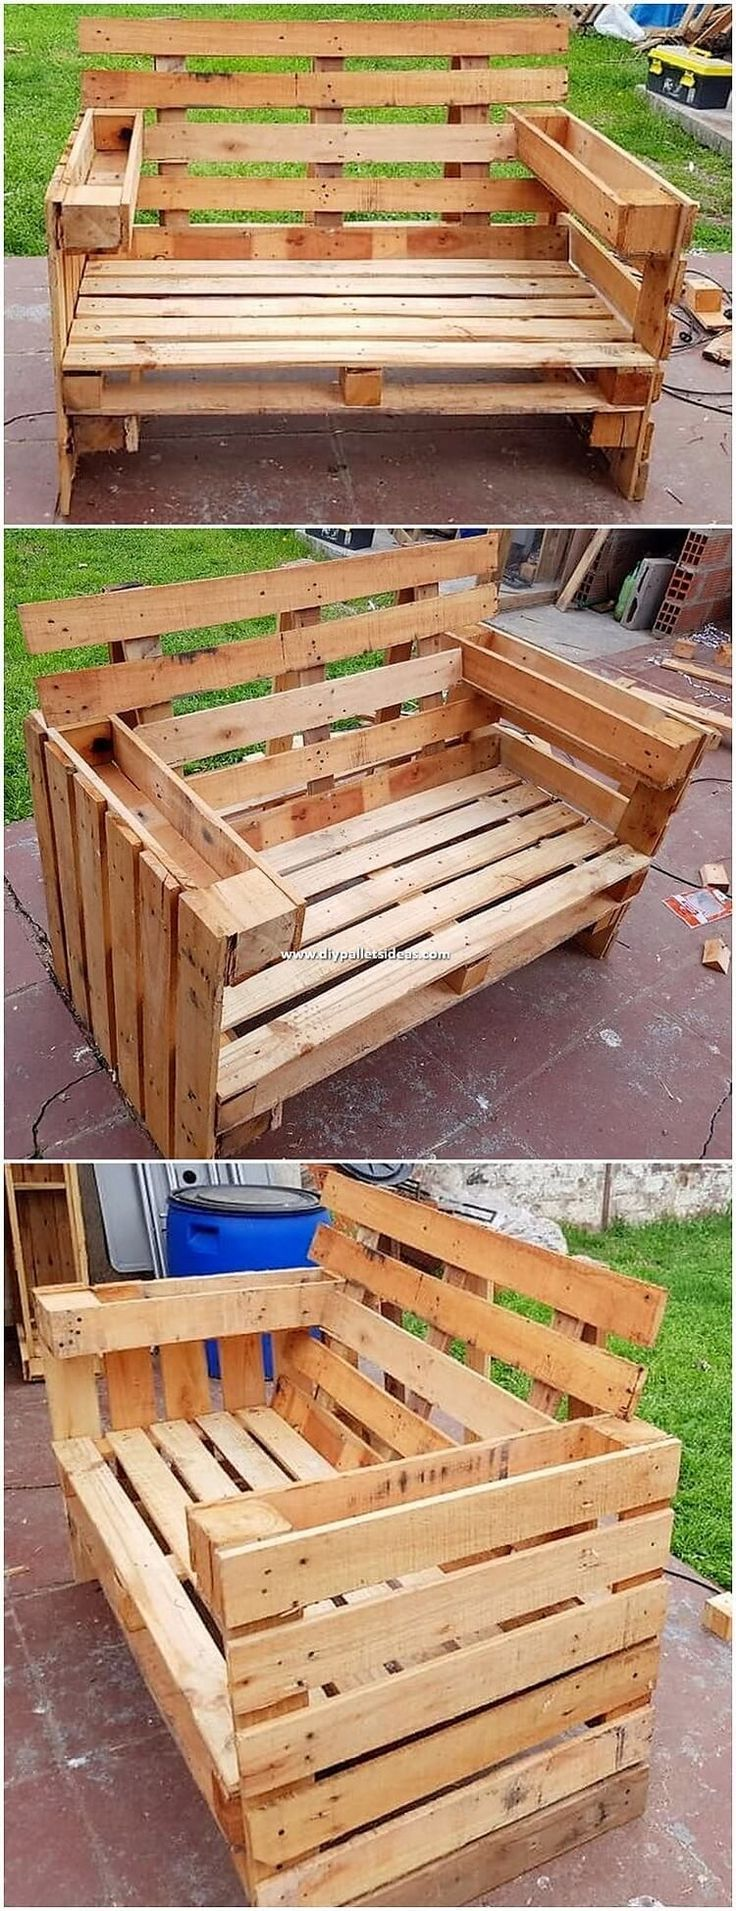 These DIY Recycled Pallet Ideas are Easy to Copy | Wood ...